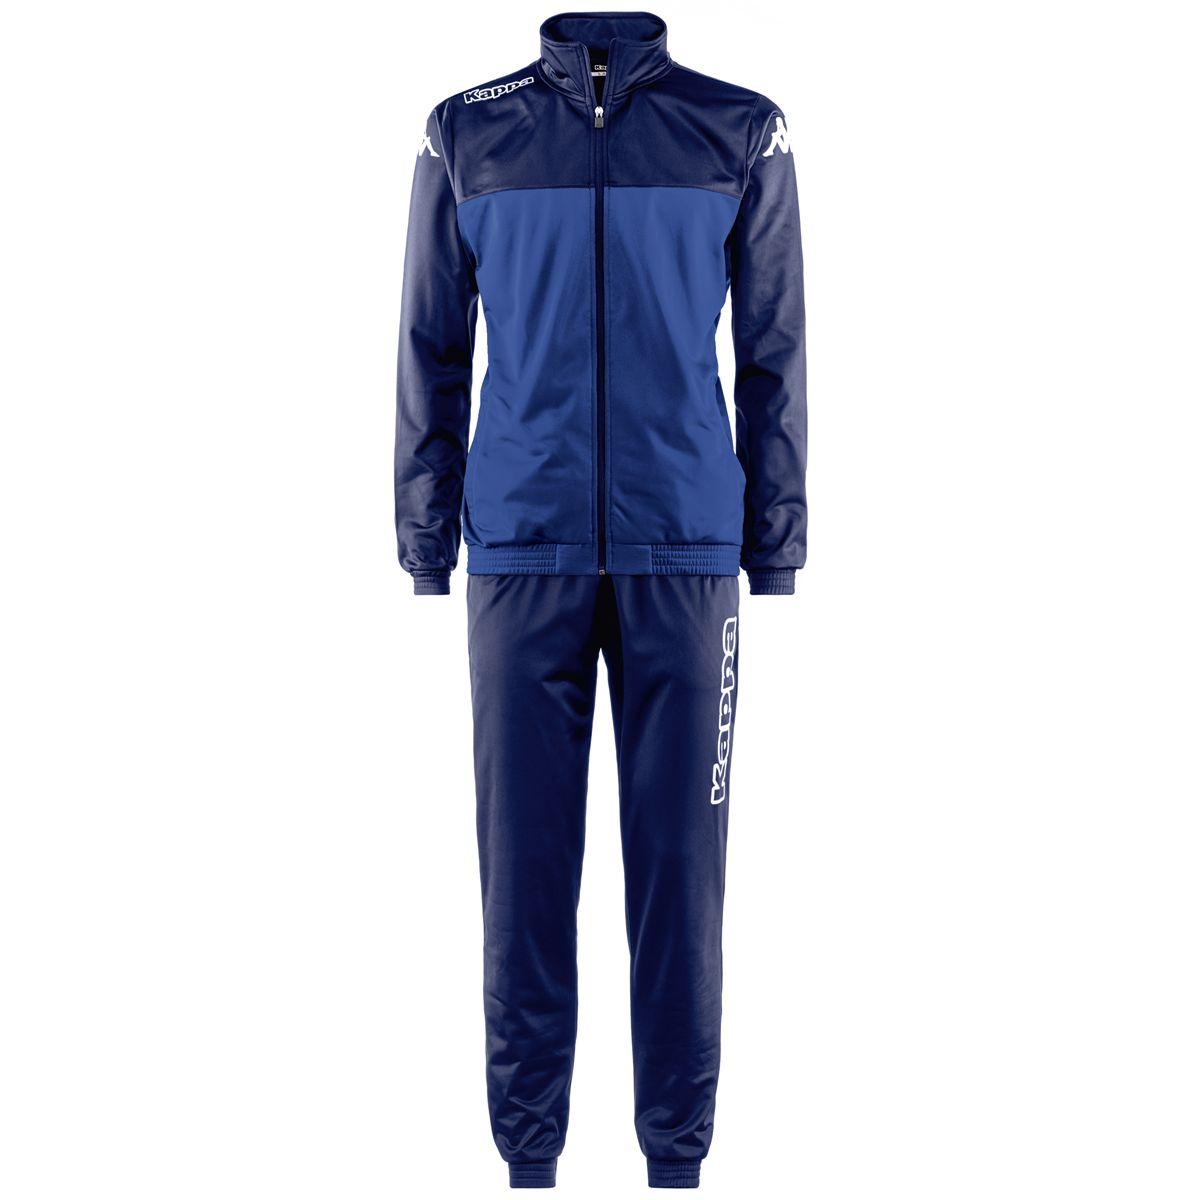 UNPACKAGED Kappa Sport Tracking suit KAPPA4SOCCER ALFON Junior Boy  Tracksuits